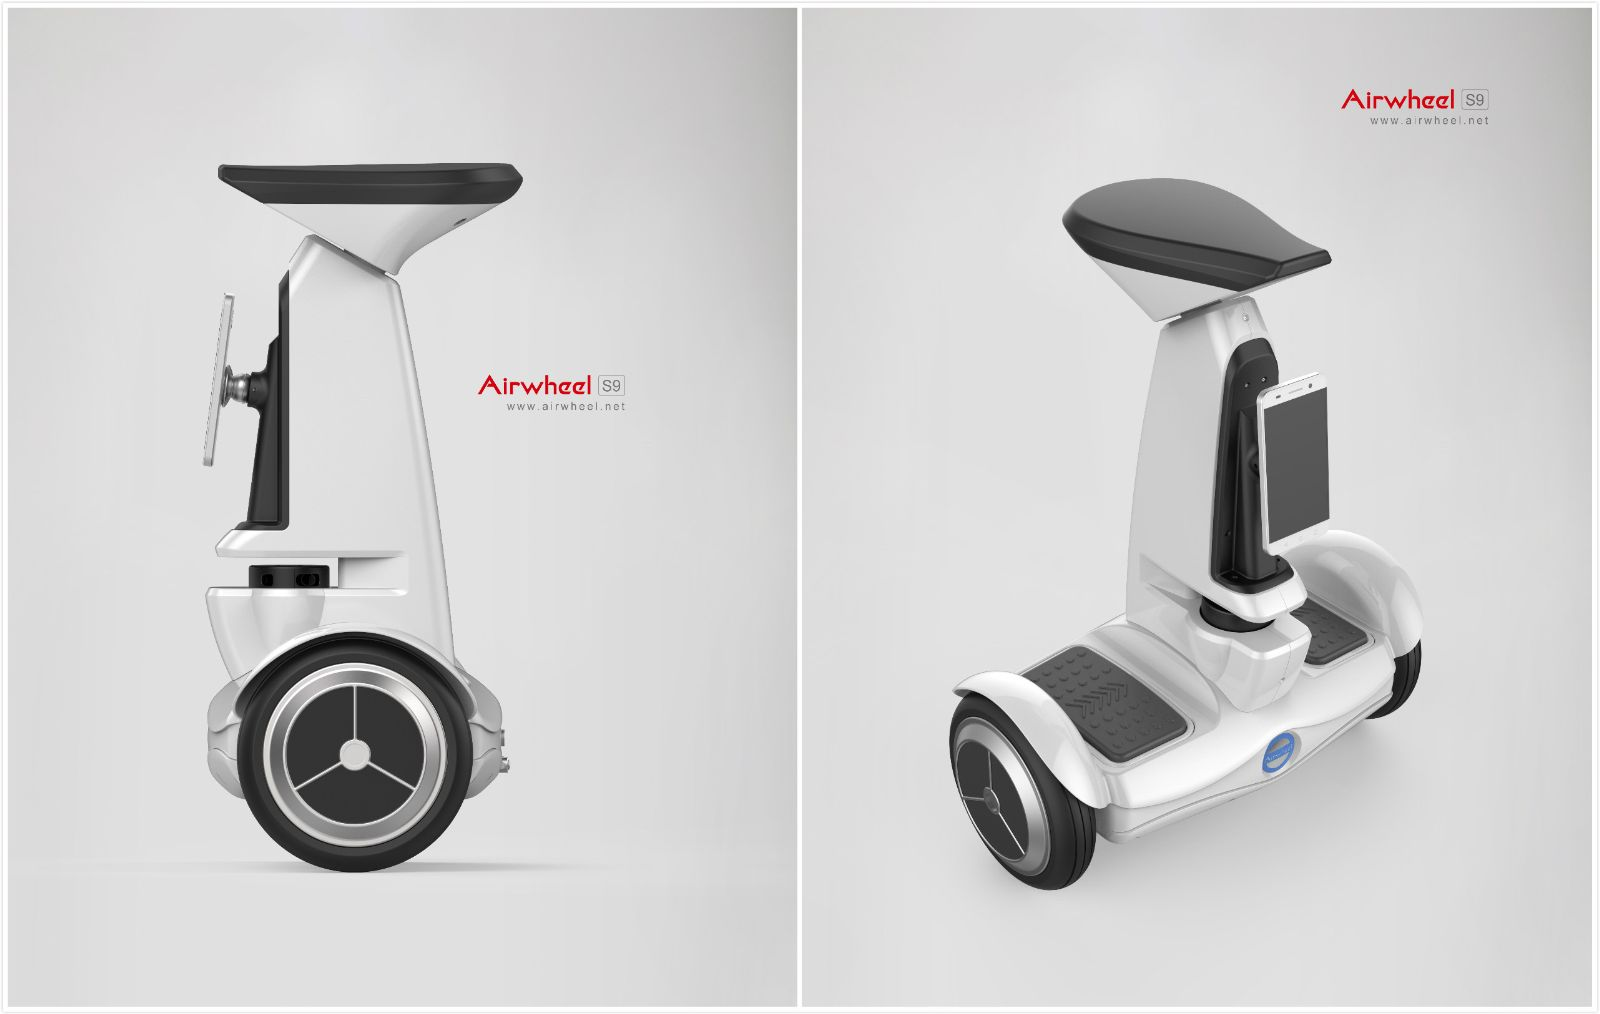 Airwheel S9